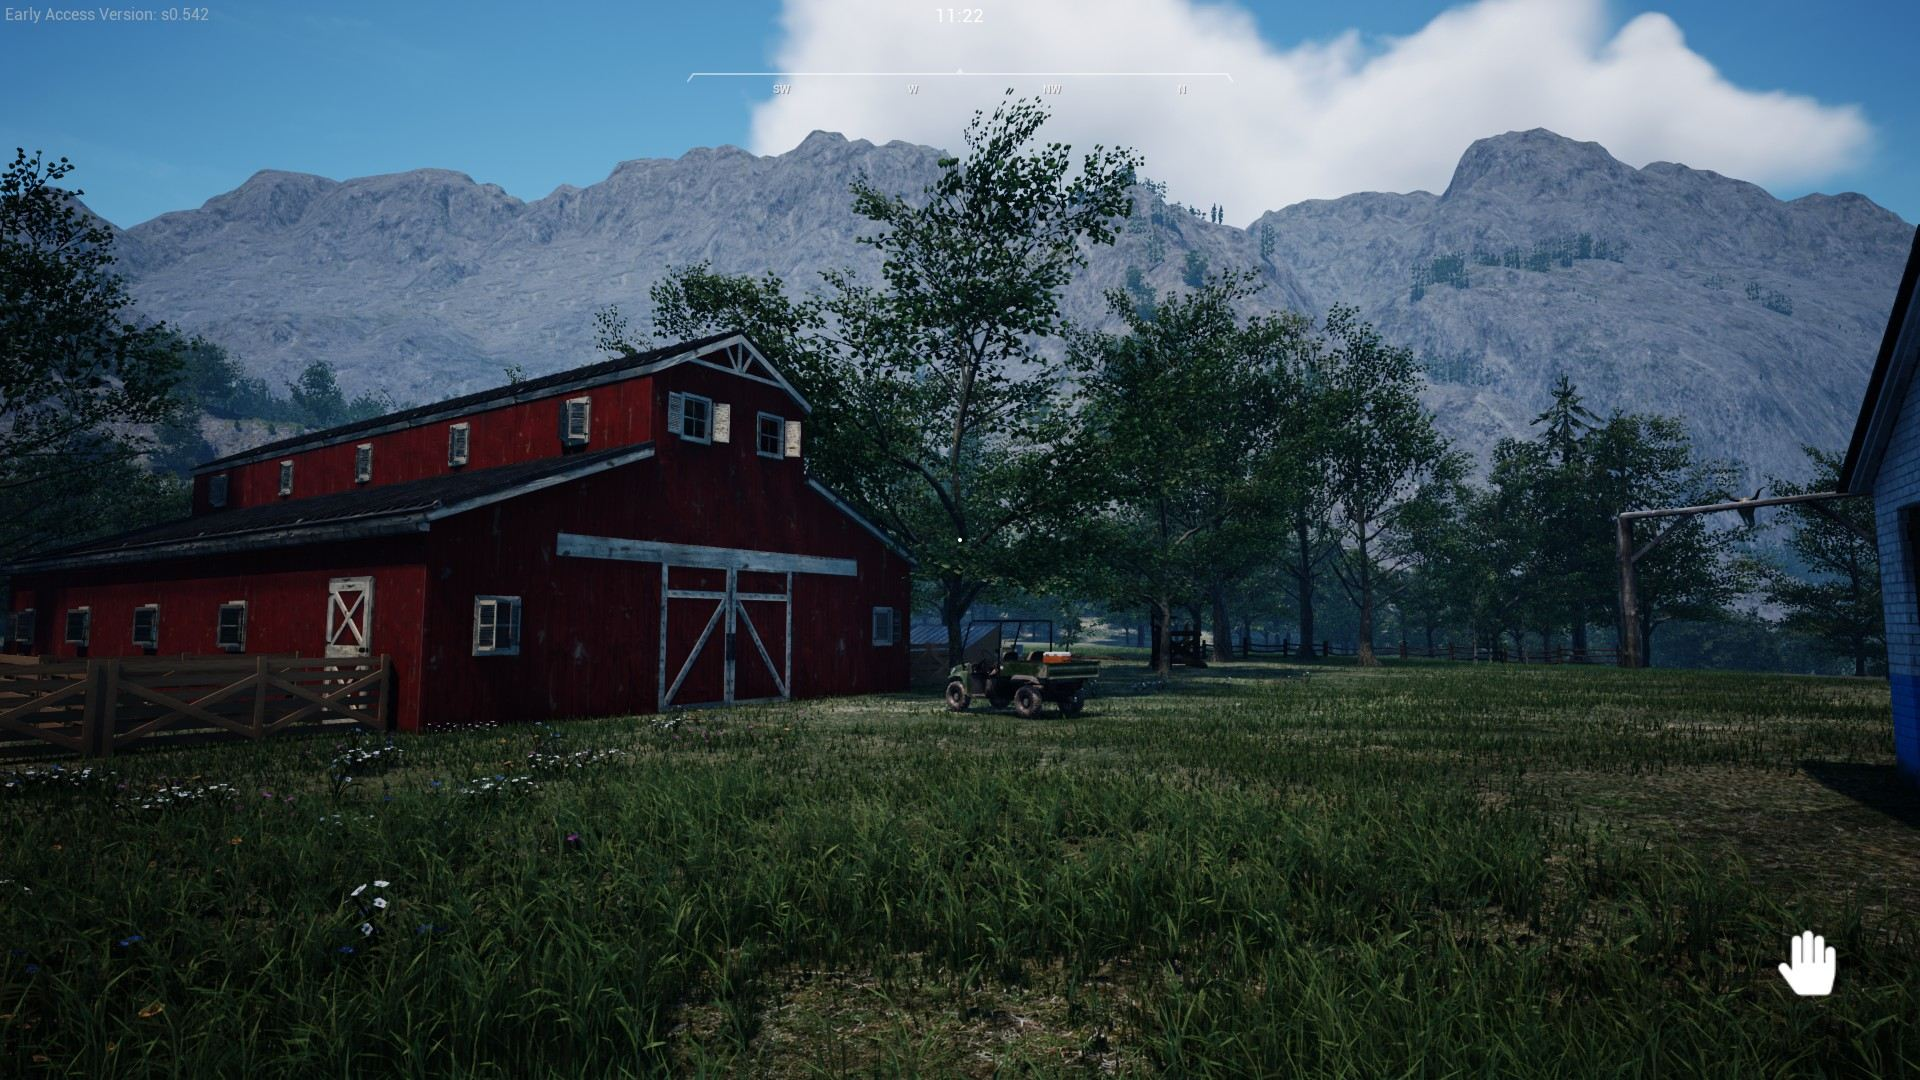 Ranch Simulator - The Ranch - Early Access Review